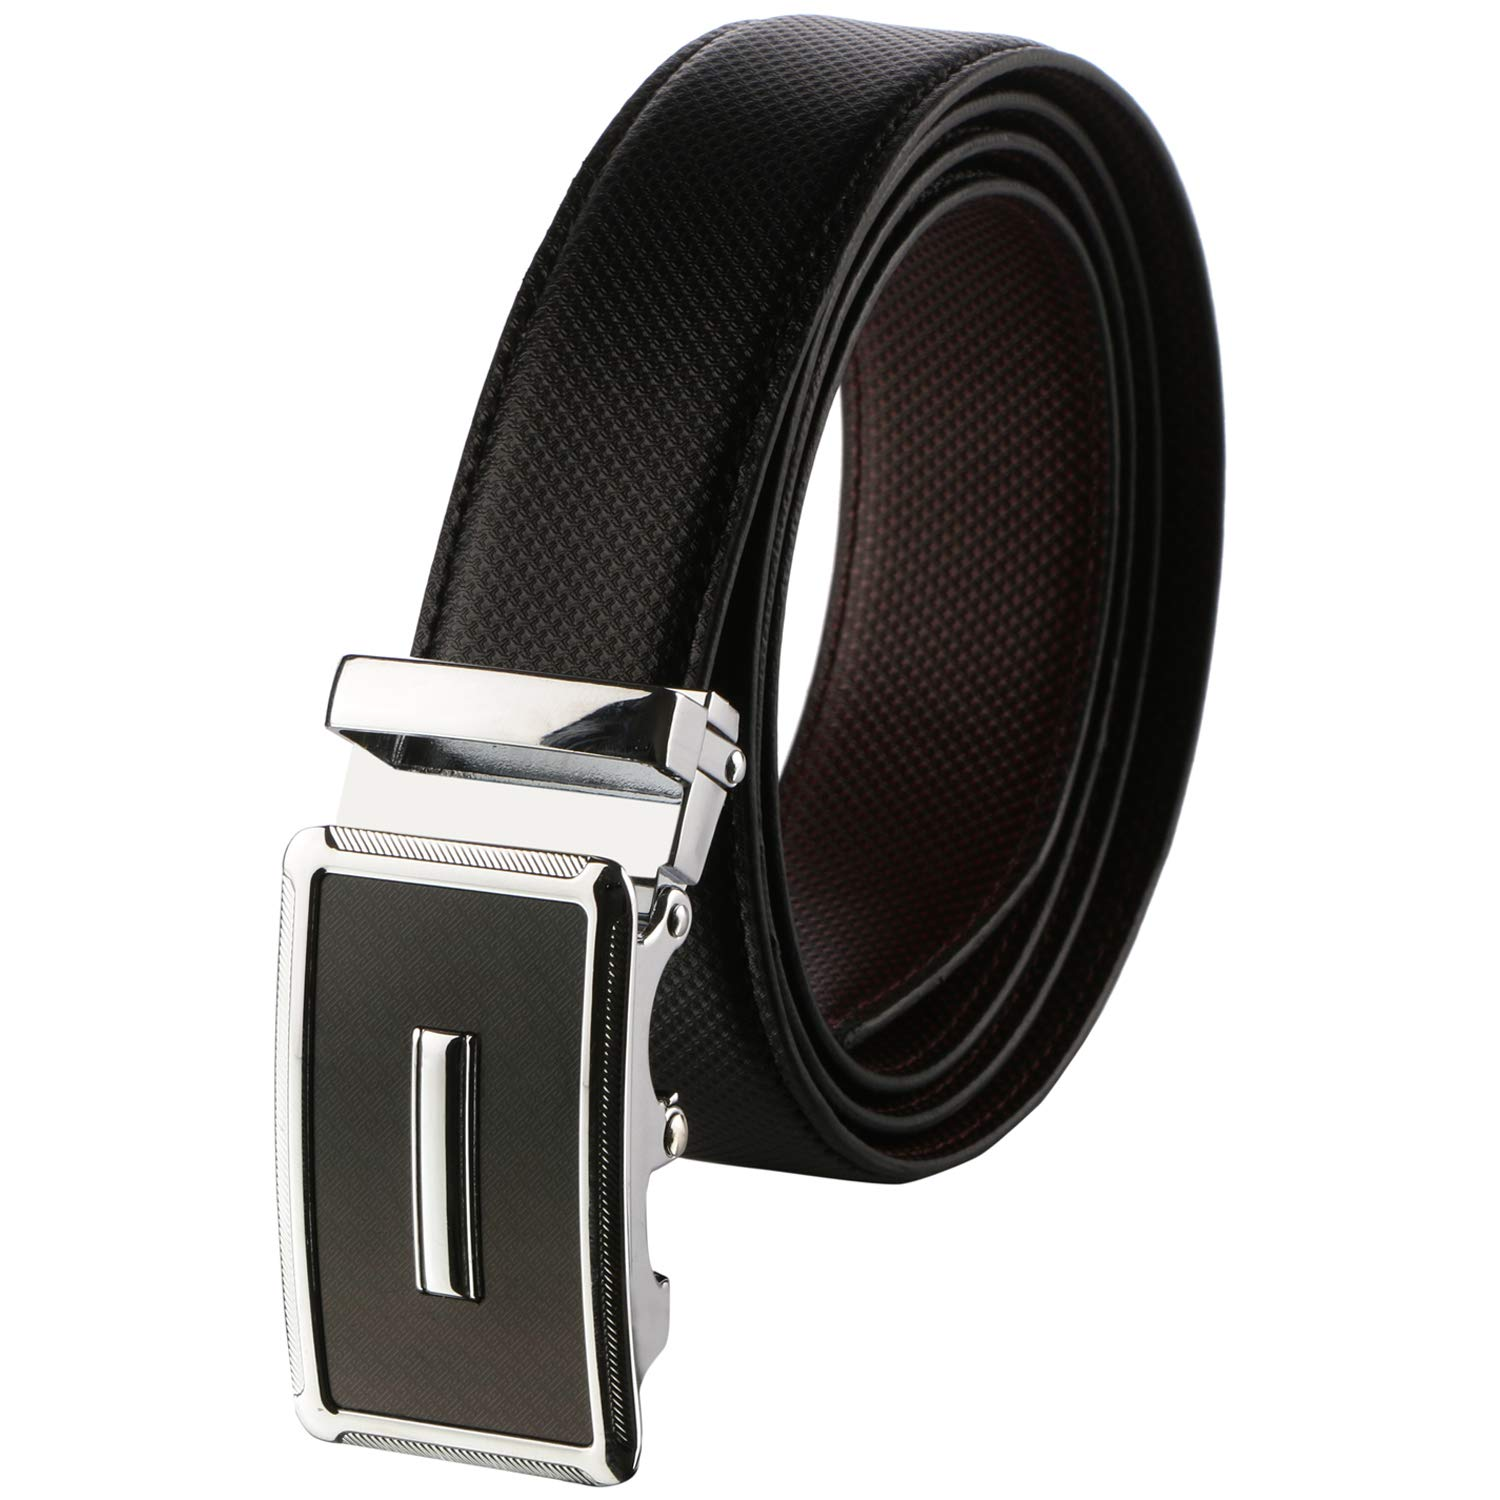 Labnoft Men's PU Leather Belt with Automatic Buckle, Black and Brown, Free Size product image